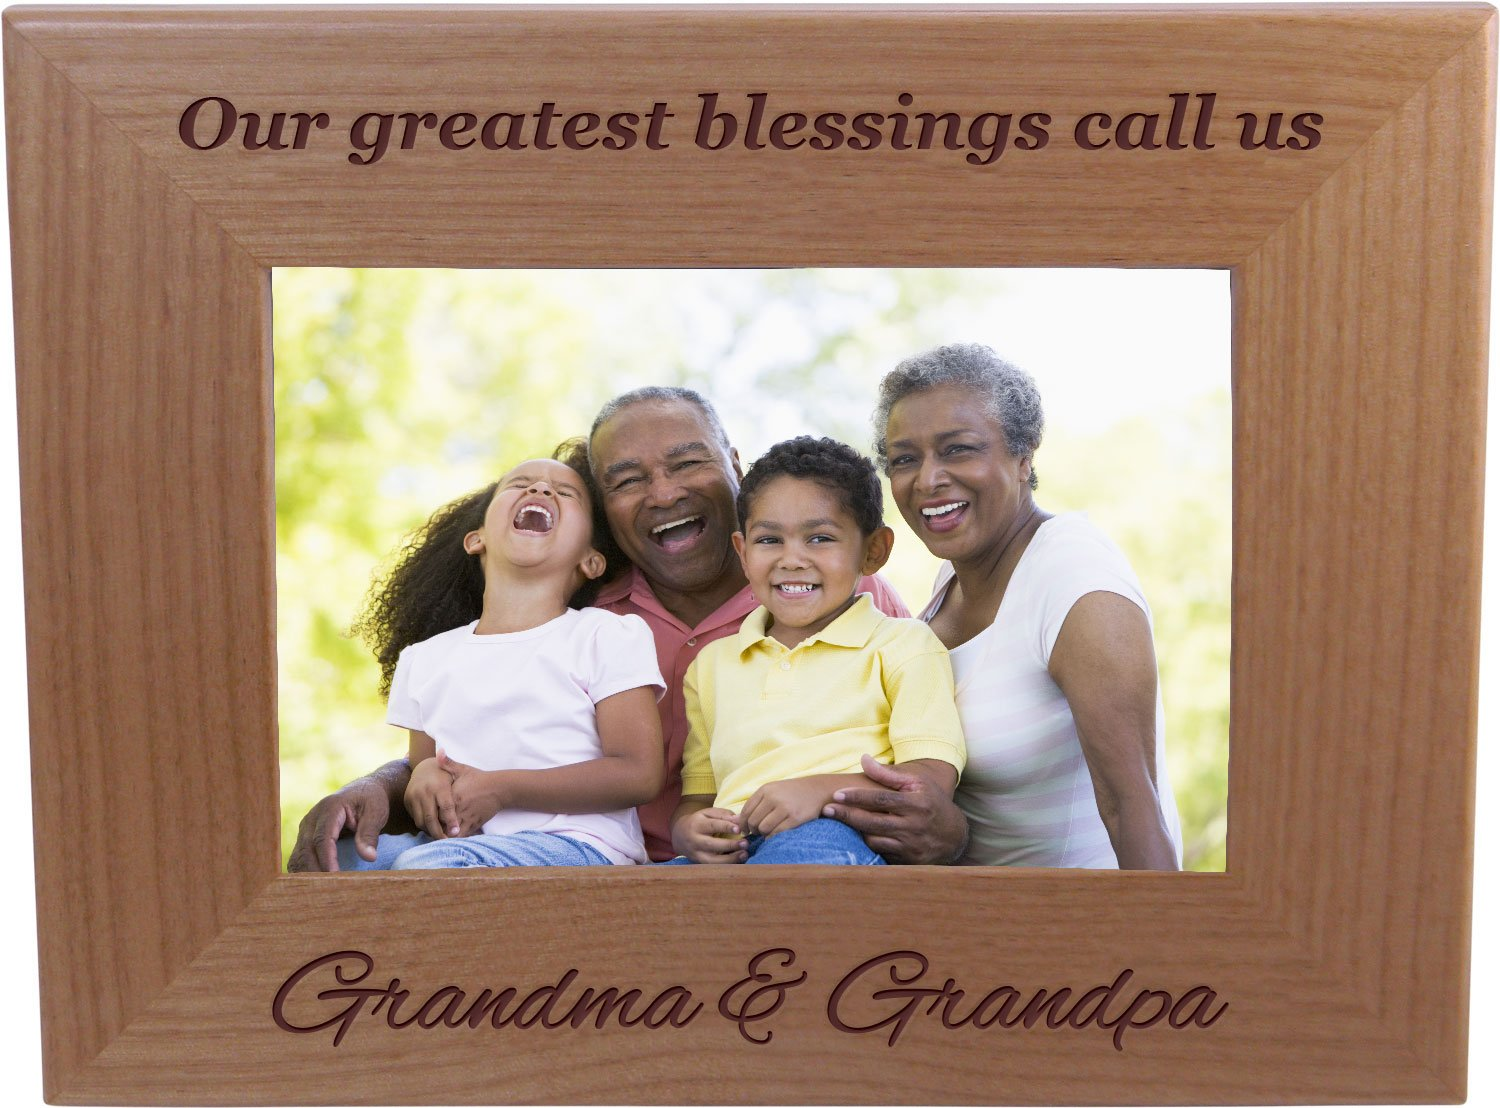 CustomGiftsNow Our Grestest Blessings Call Us Grandma & Grandpa 4-inch x 6-Inch Wood Picture Frame